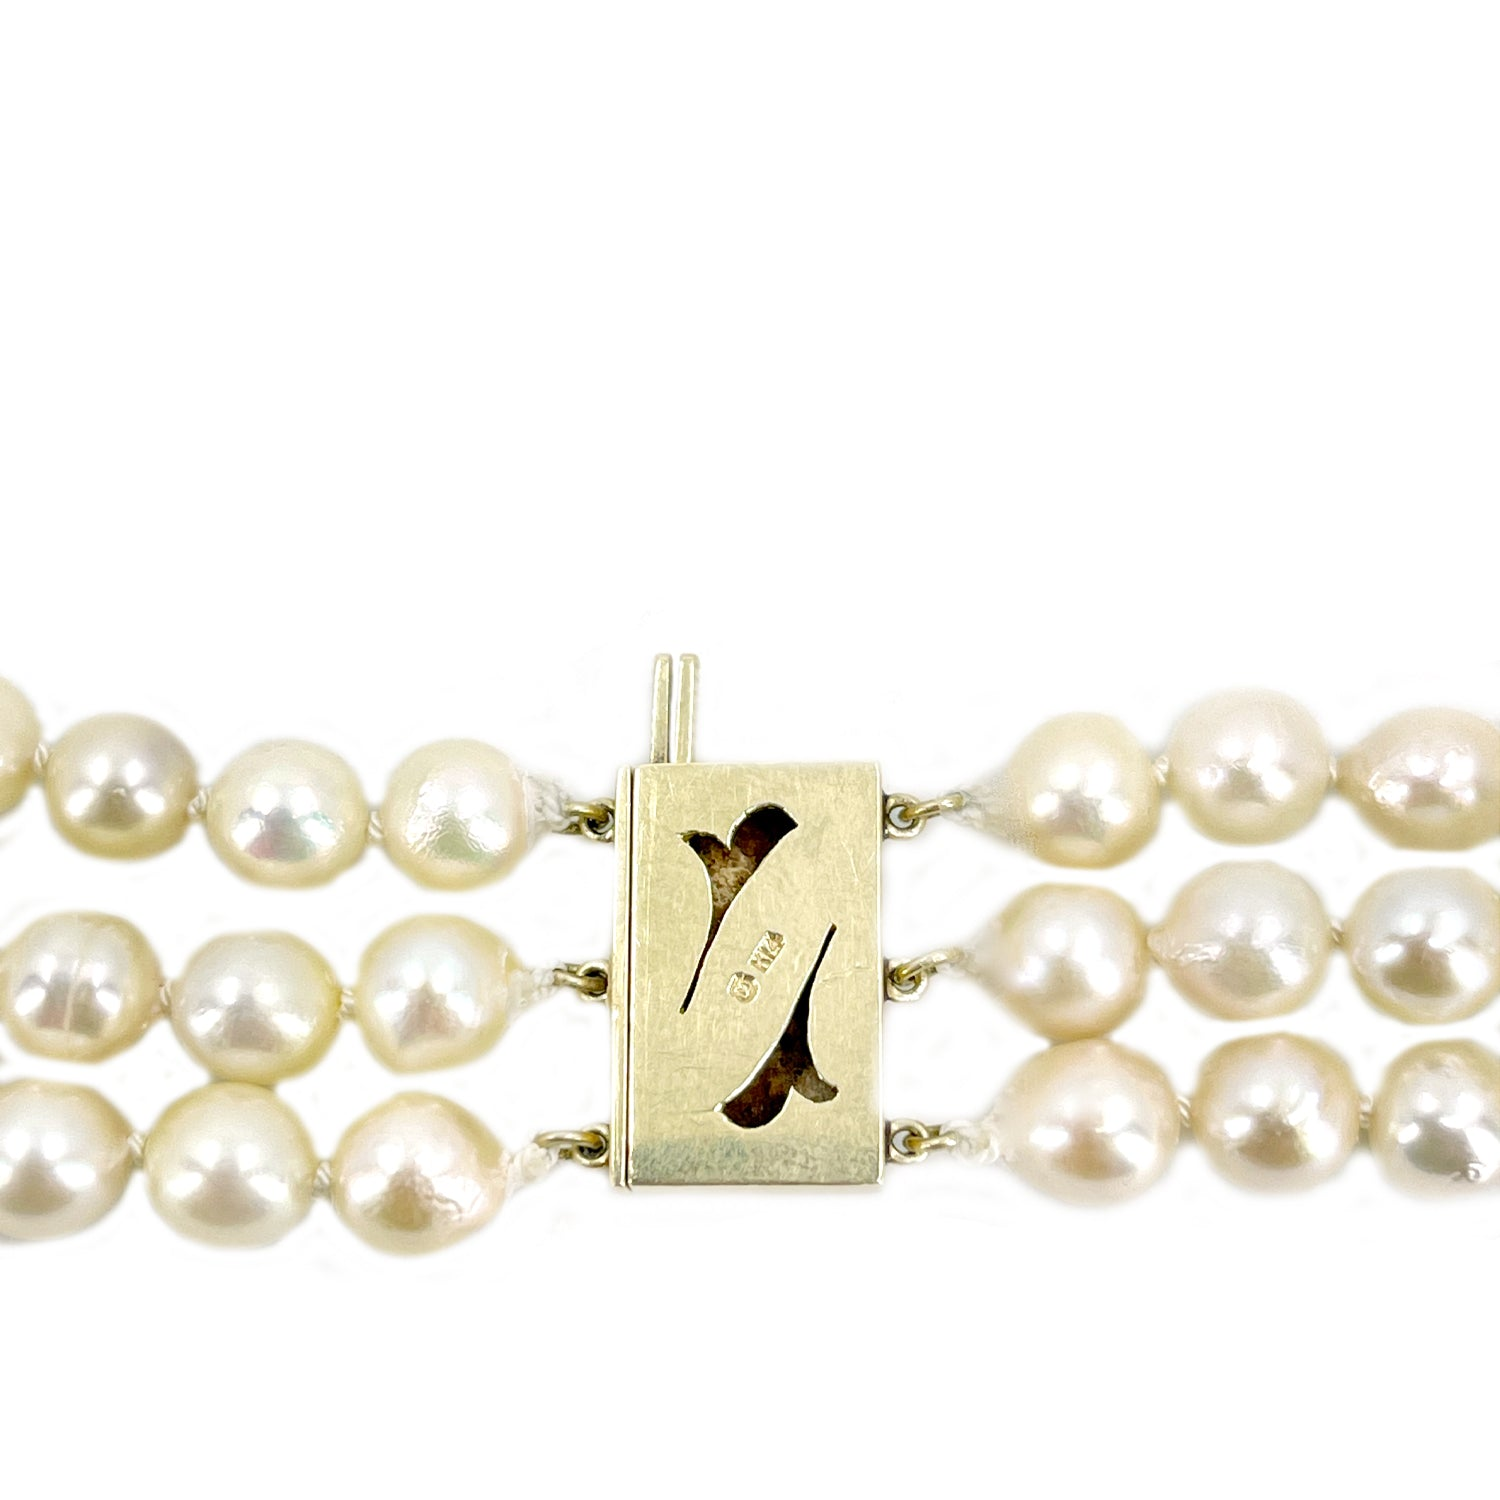 Mikimoto Baroque Japanese Cultured Akoya Pearl Triple Strand - 14K Yellow Gold 16.50-18.50 Inch